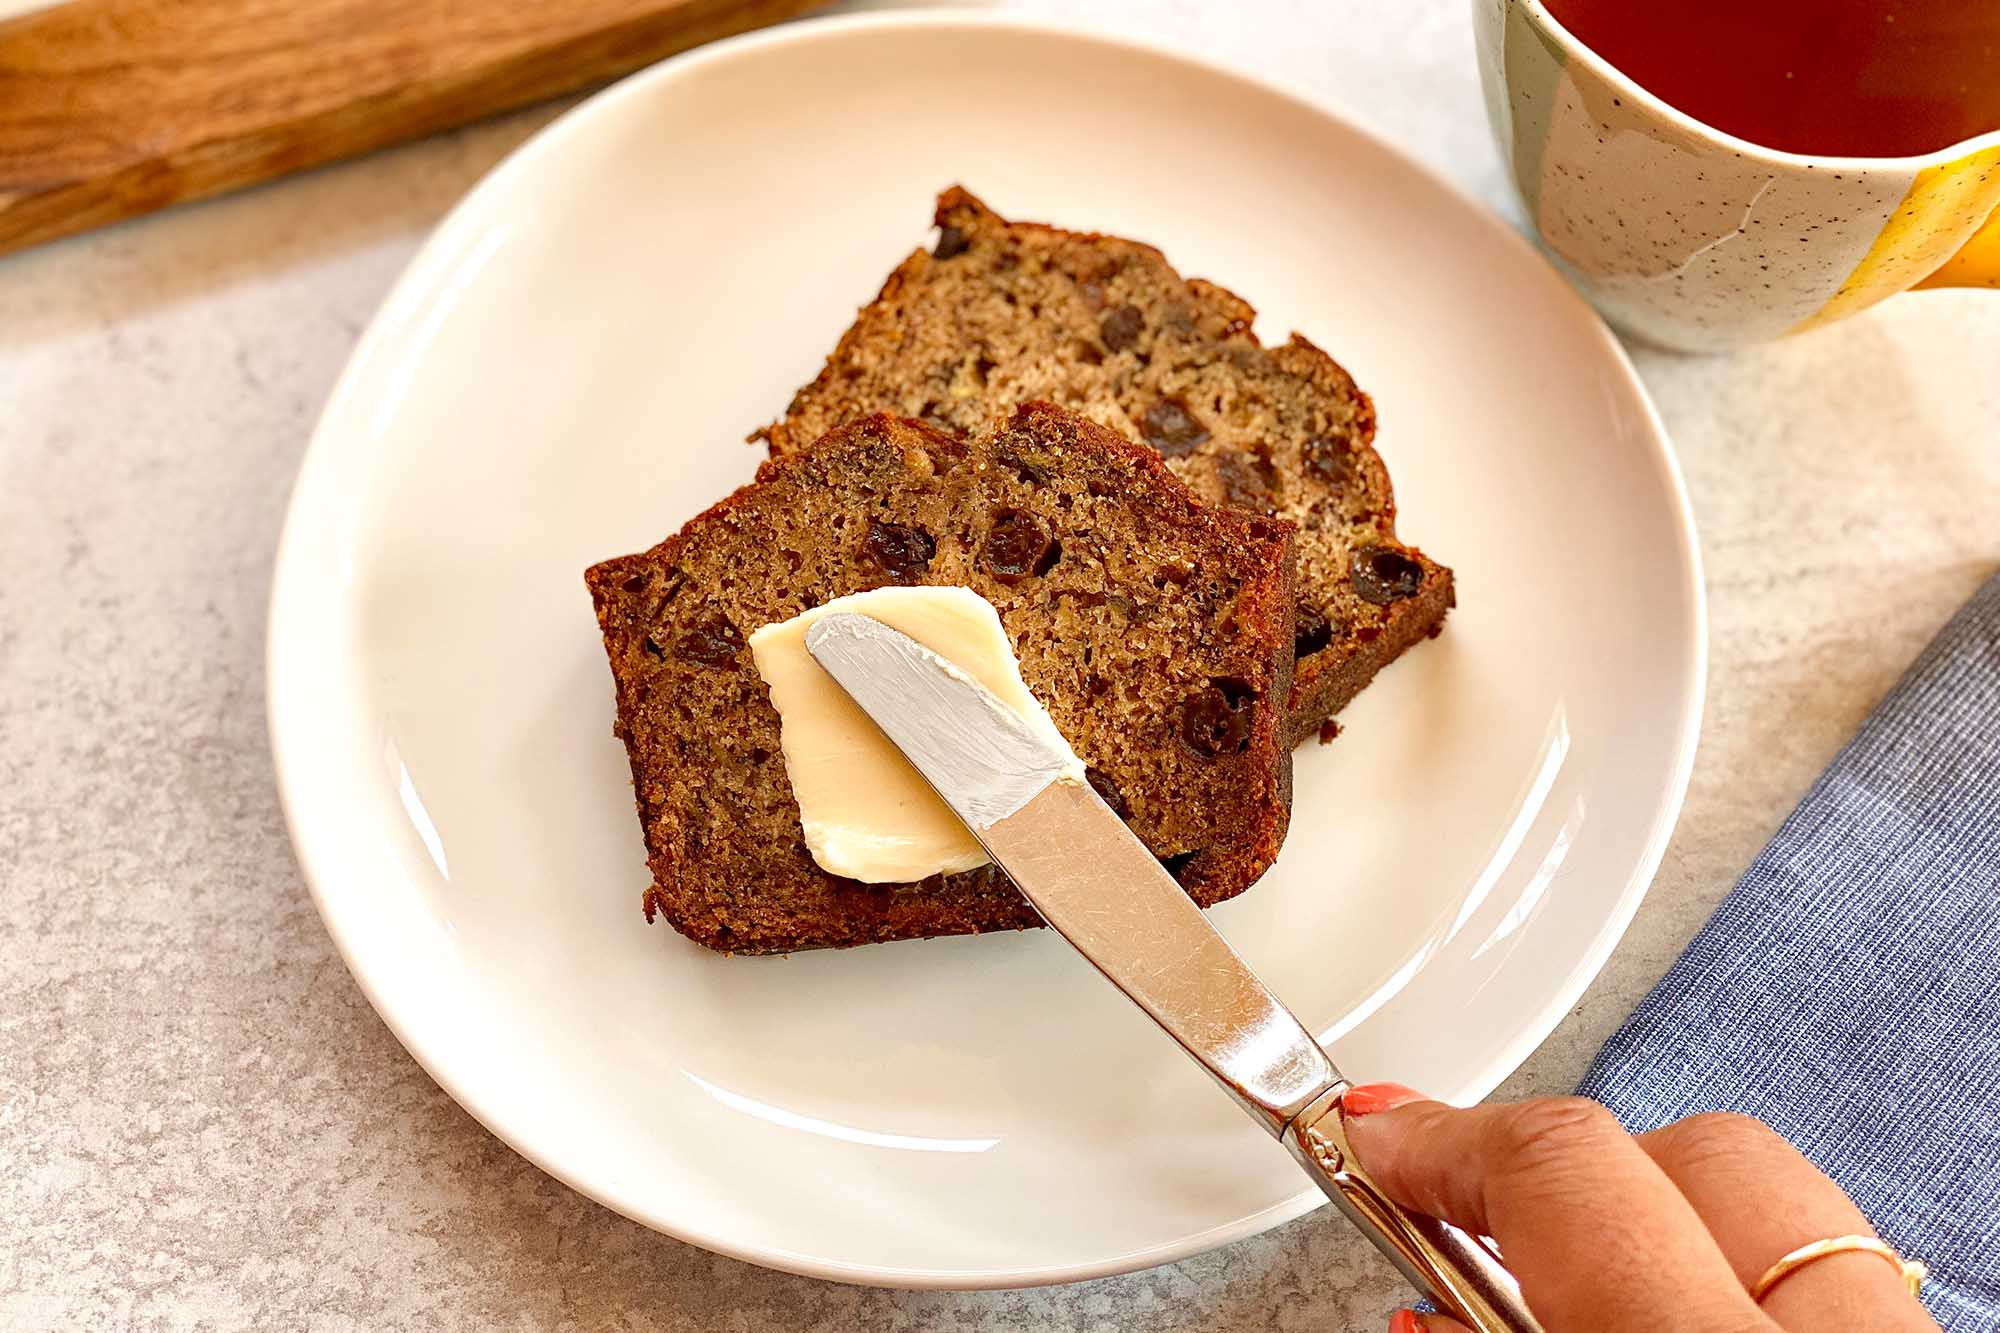 Two slices of rum raisin banana bread on a plate and getting butter spread on top.